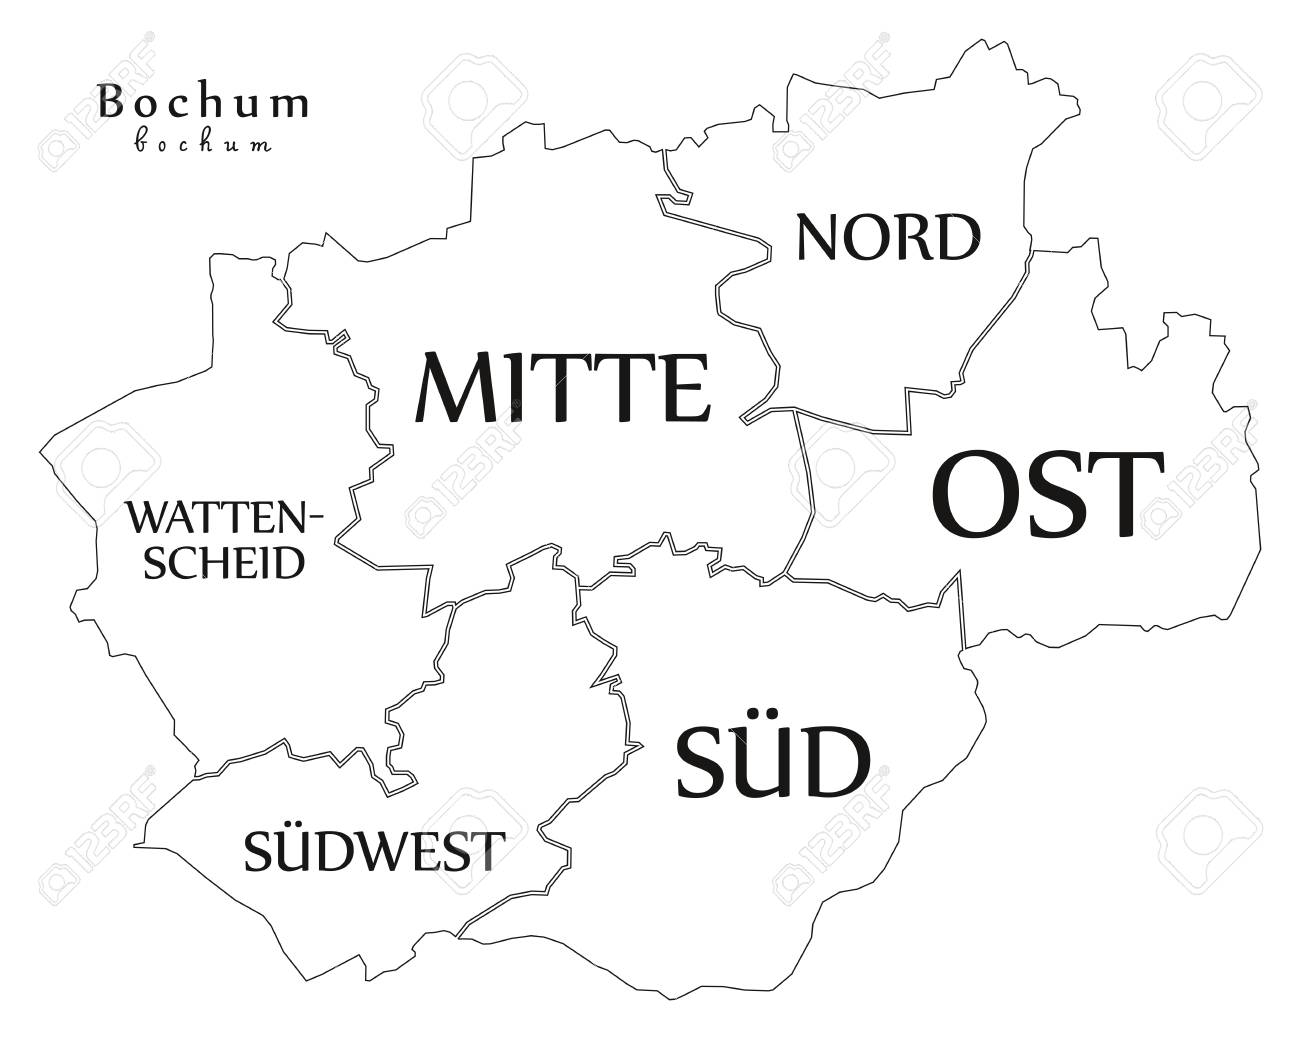 Modern City Map Bochum City Of Germany With Boroughs And Titles